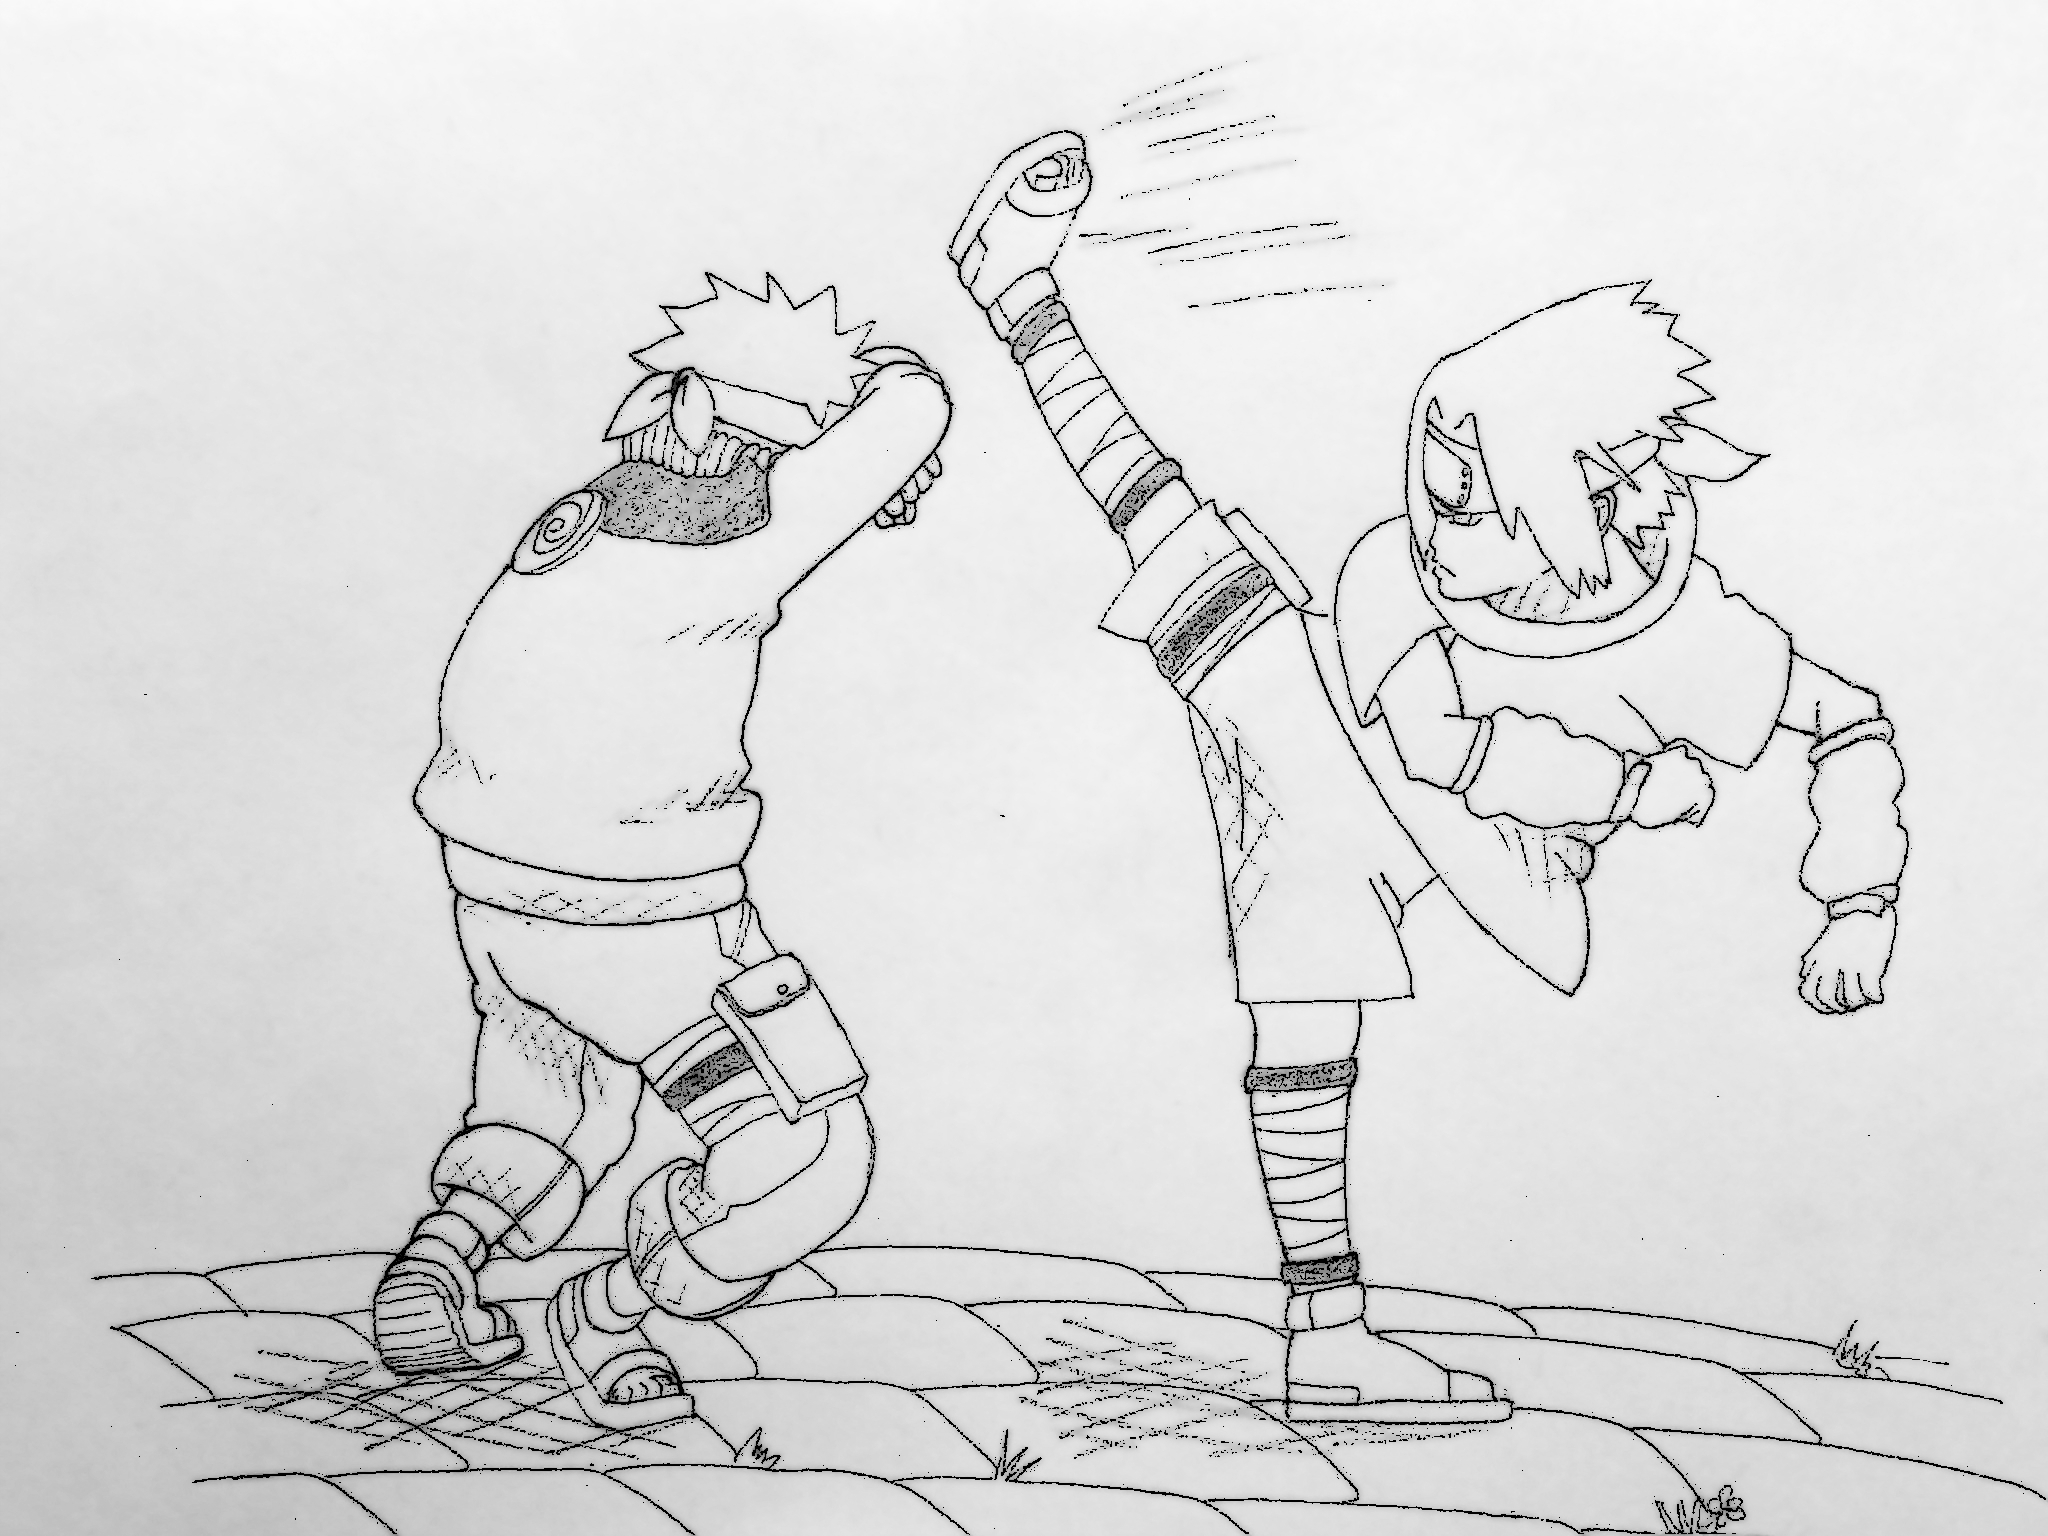 Uzumaki naruto vs uchiha sasuke by radovanbabovic on deviantart